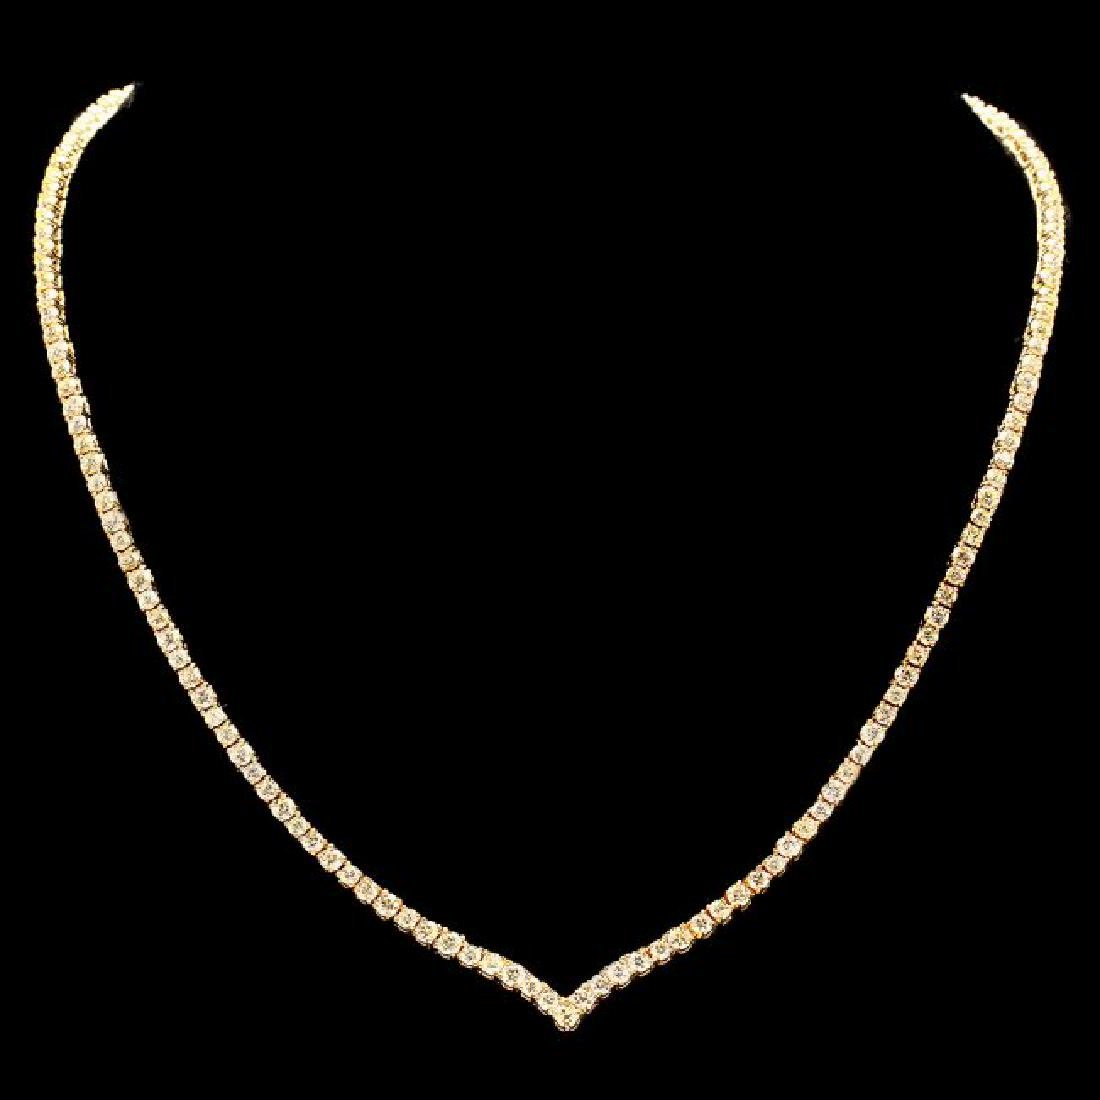 18k Yellow Gold 8.50ct Diamond Necklace